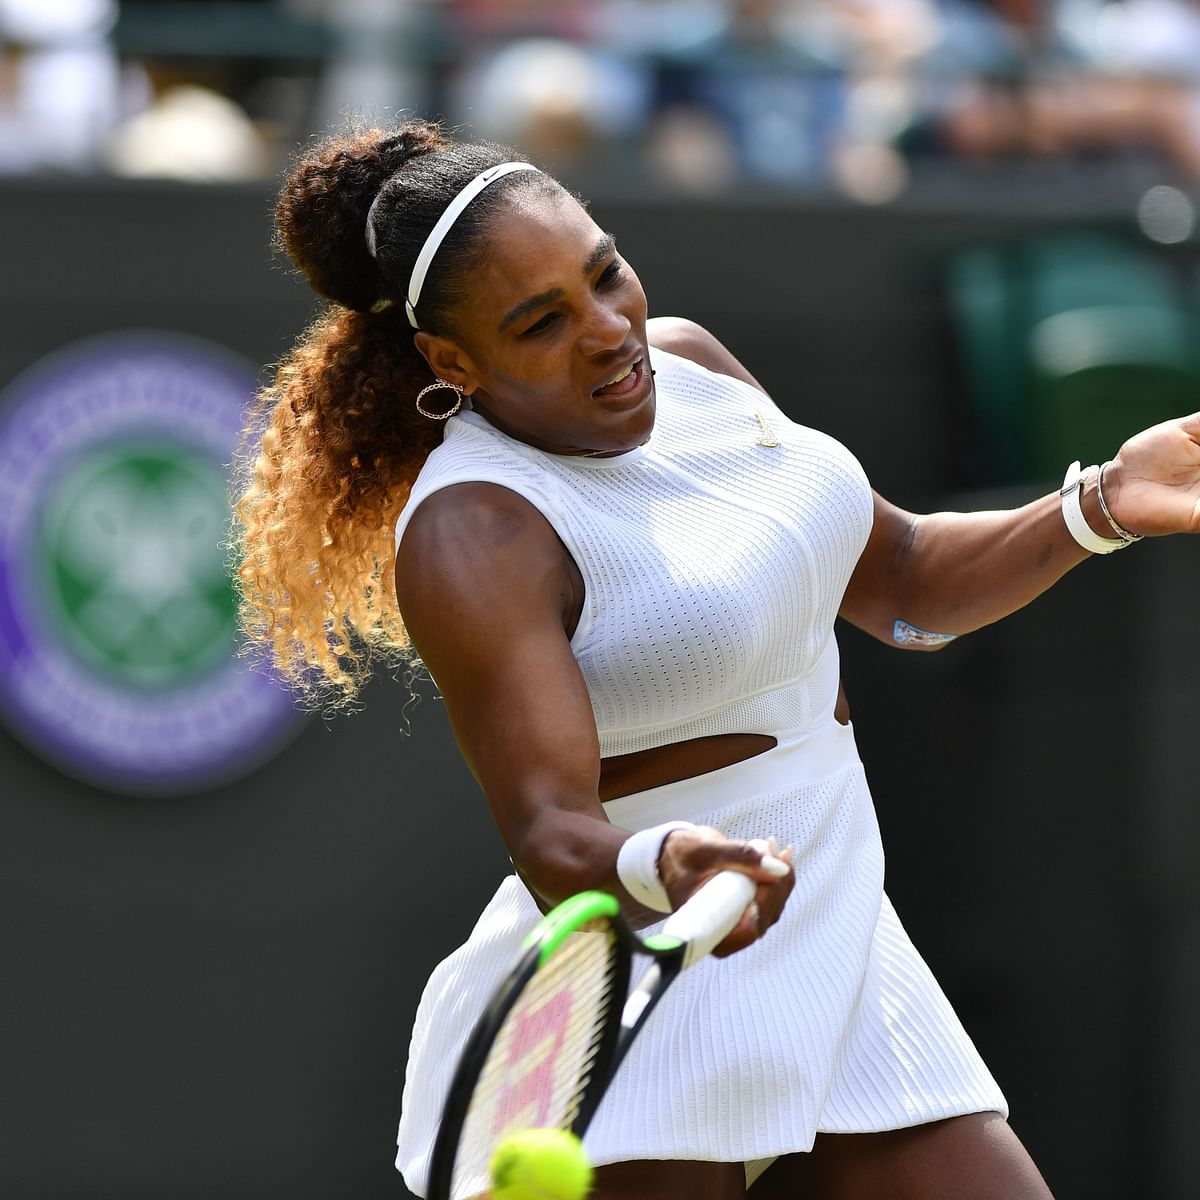 Wimbledon 2019: Serena Williams fined $10,000 for damaging court